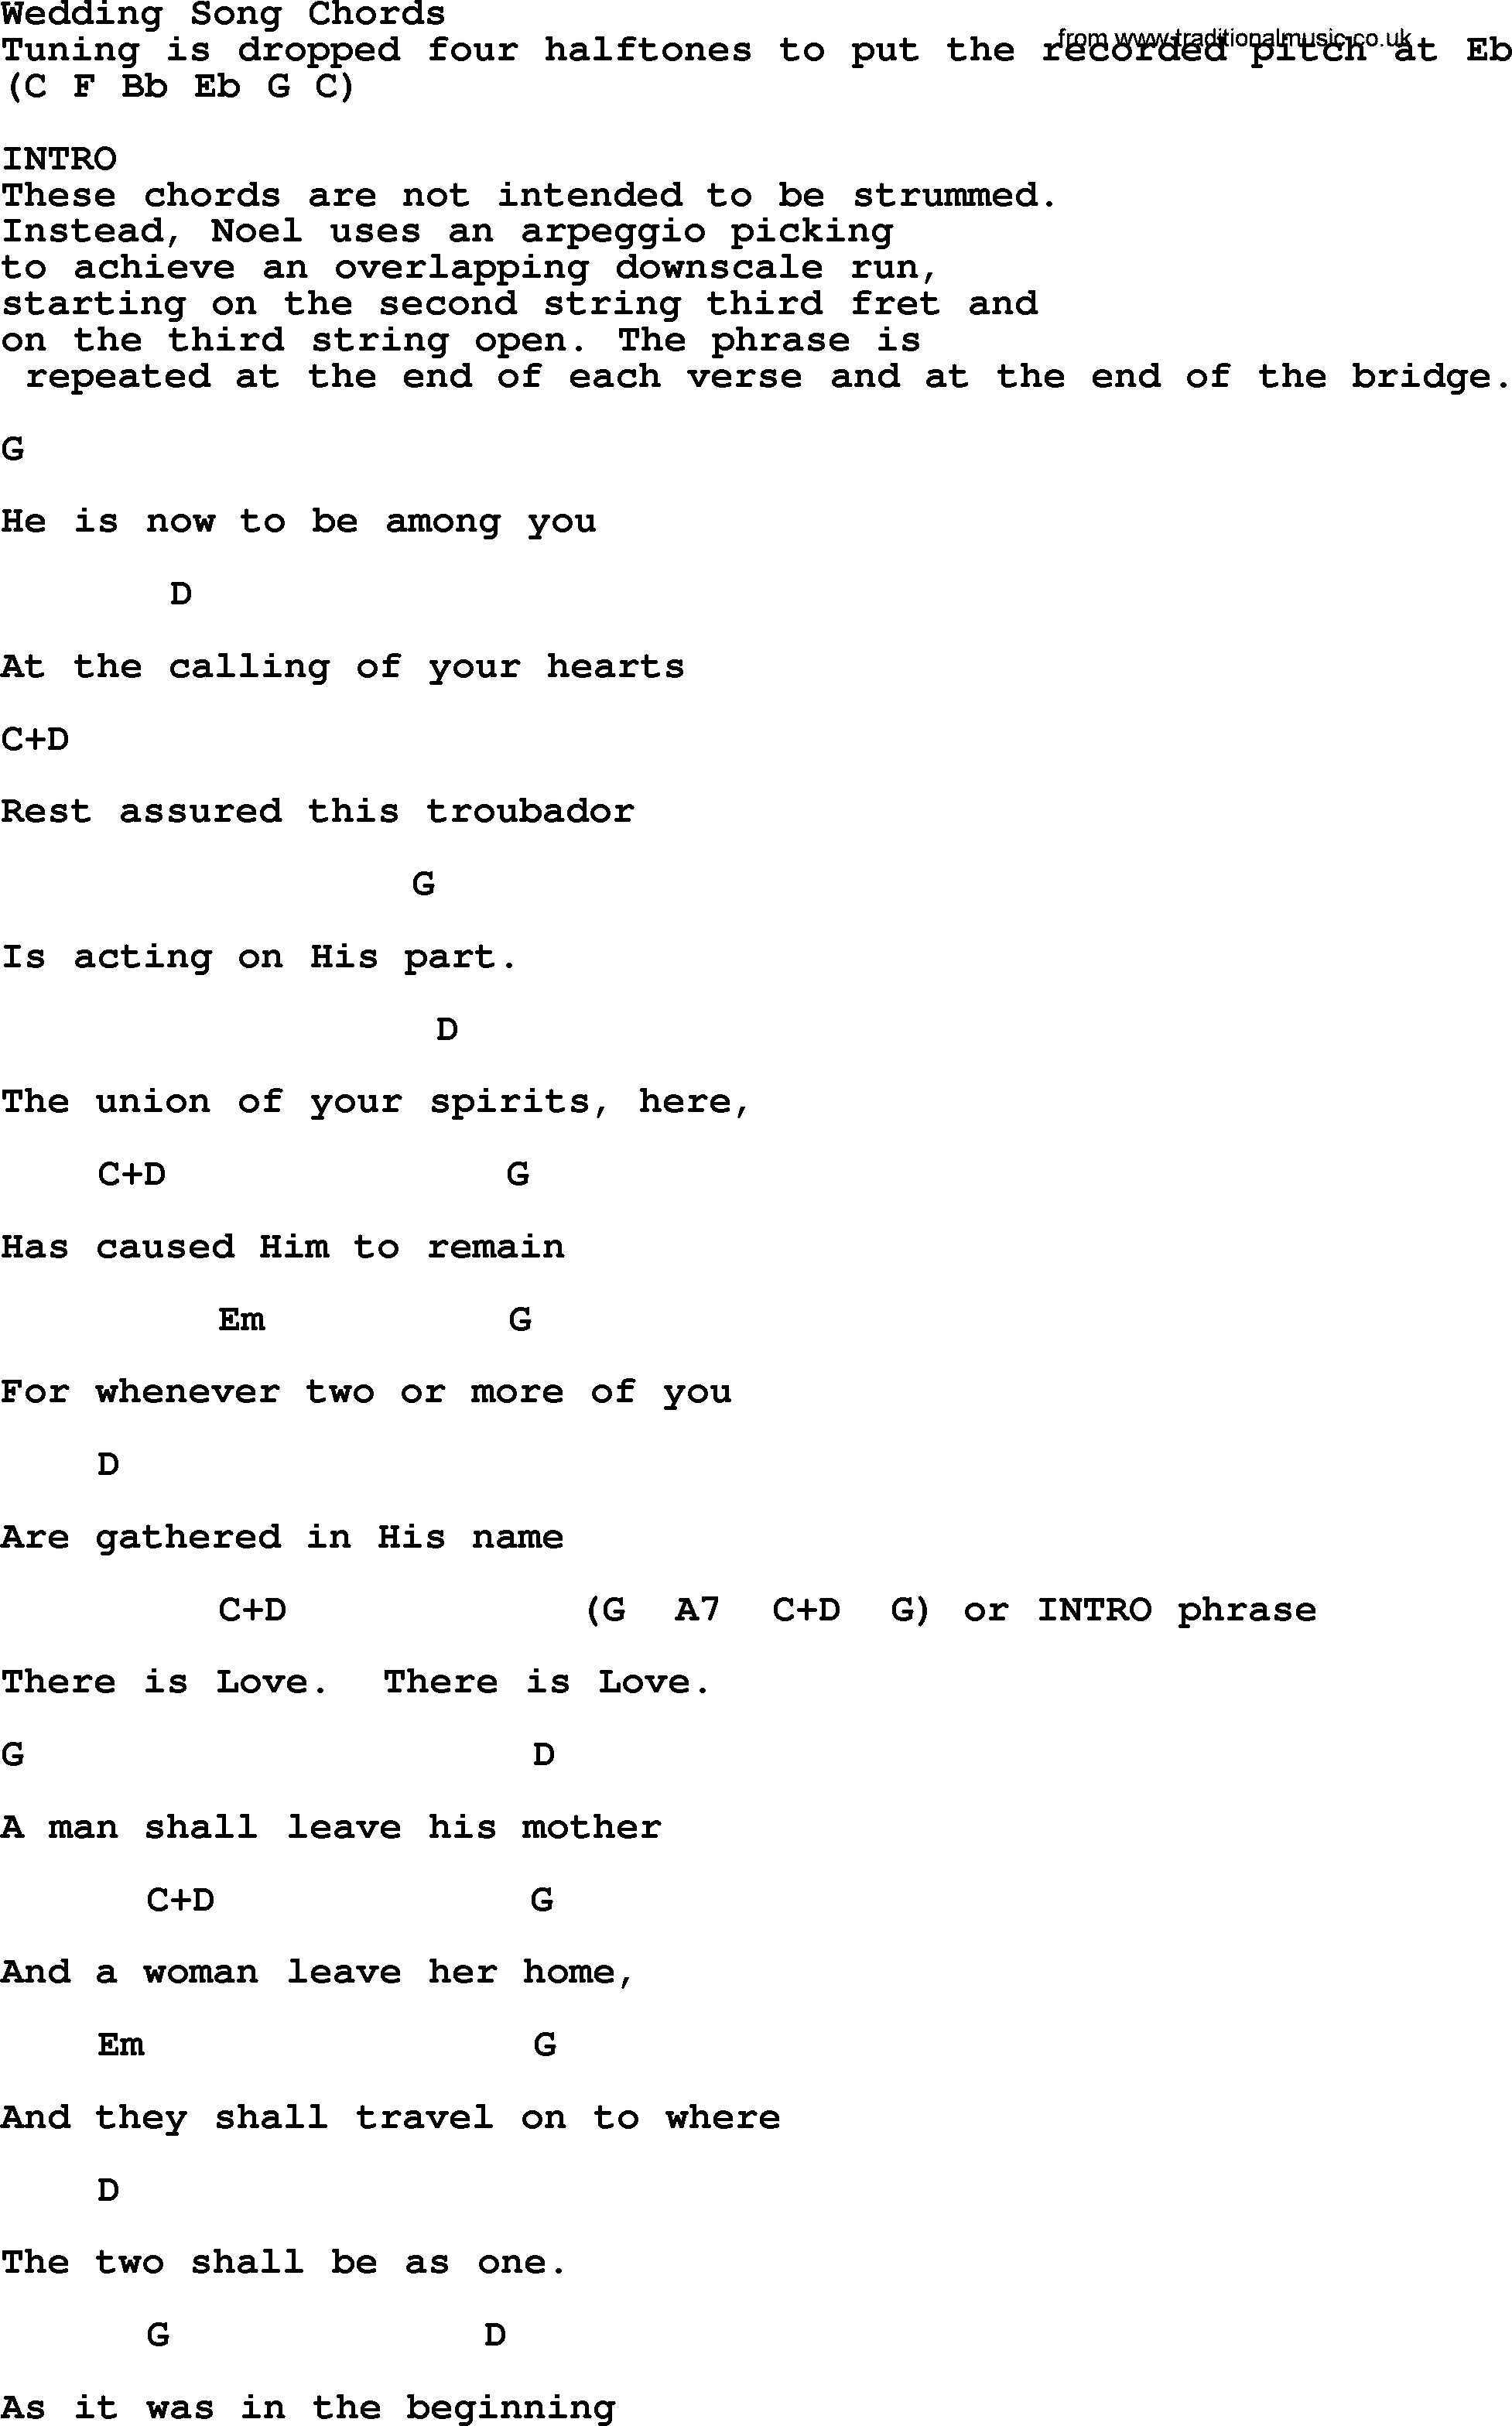 Peter Paul And Mary Song Wedding Song Lyrics And Chords